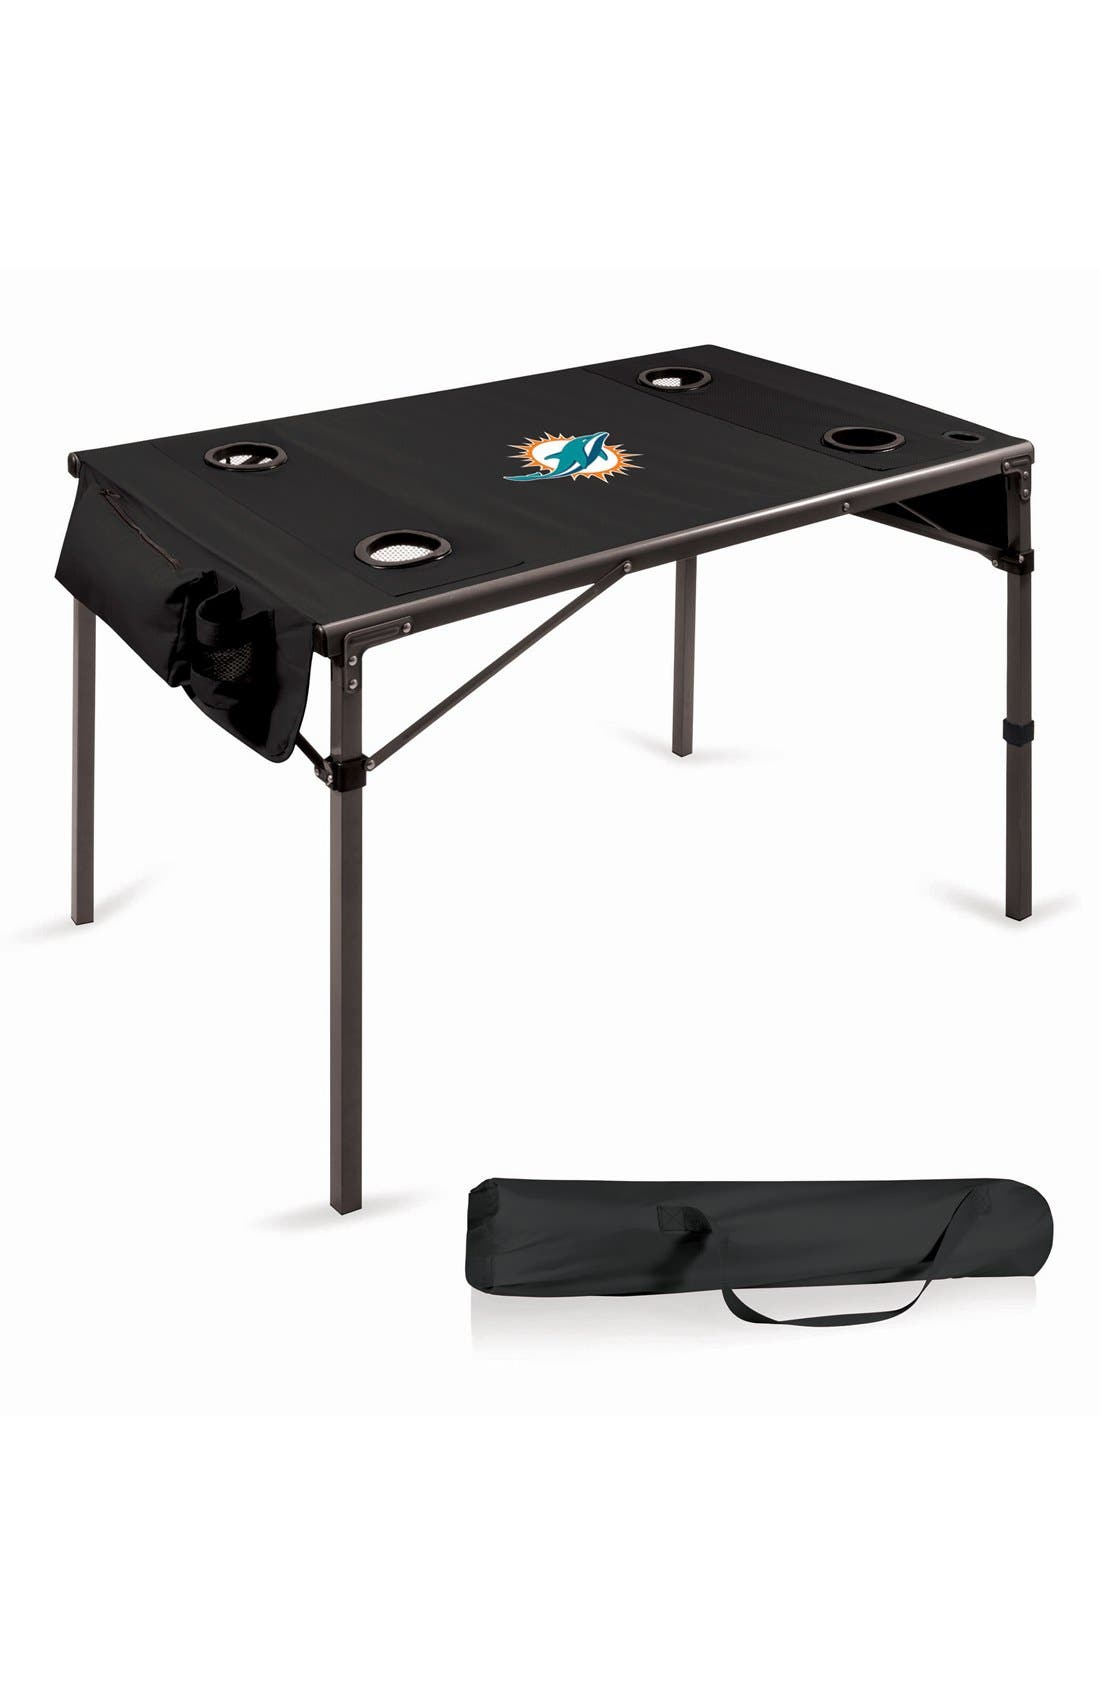 Main Image - Picnic Time Soft Top Travel Table